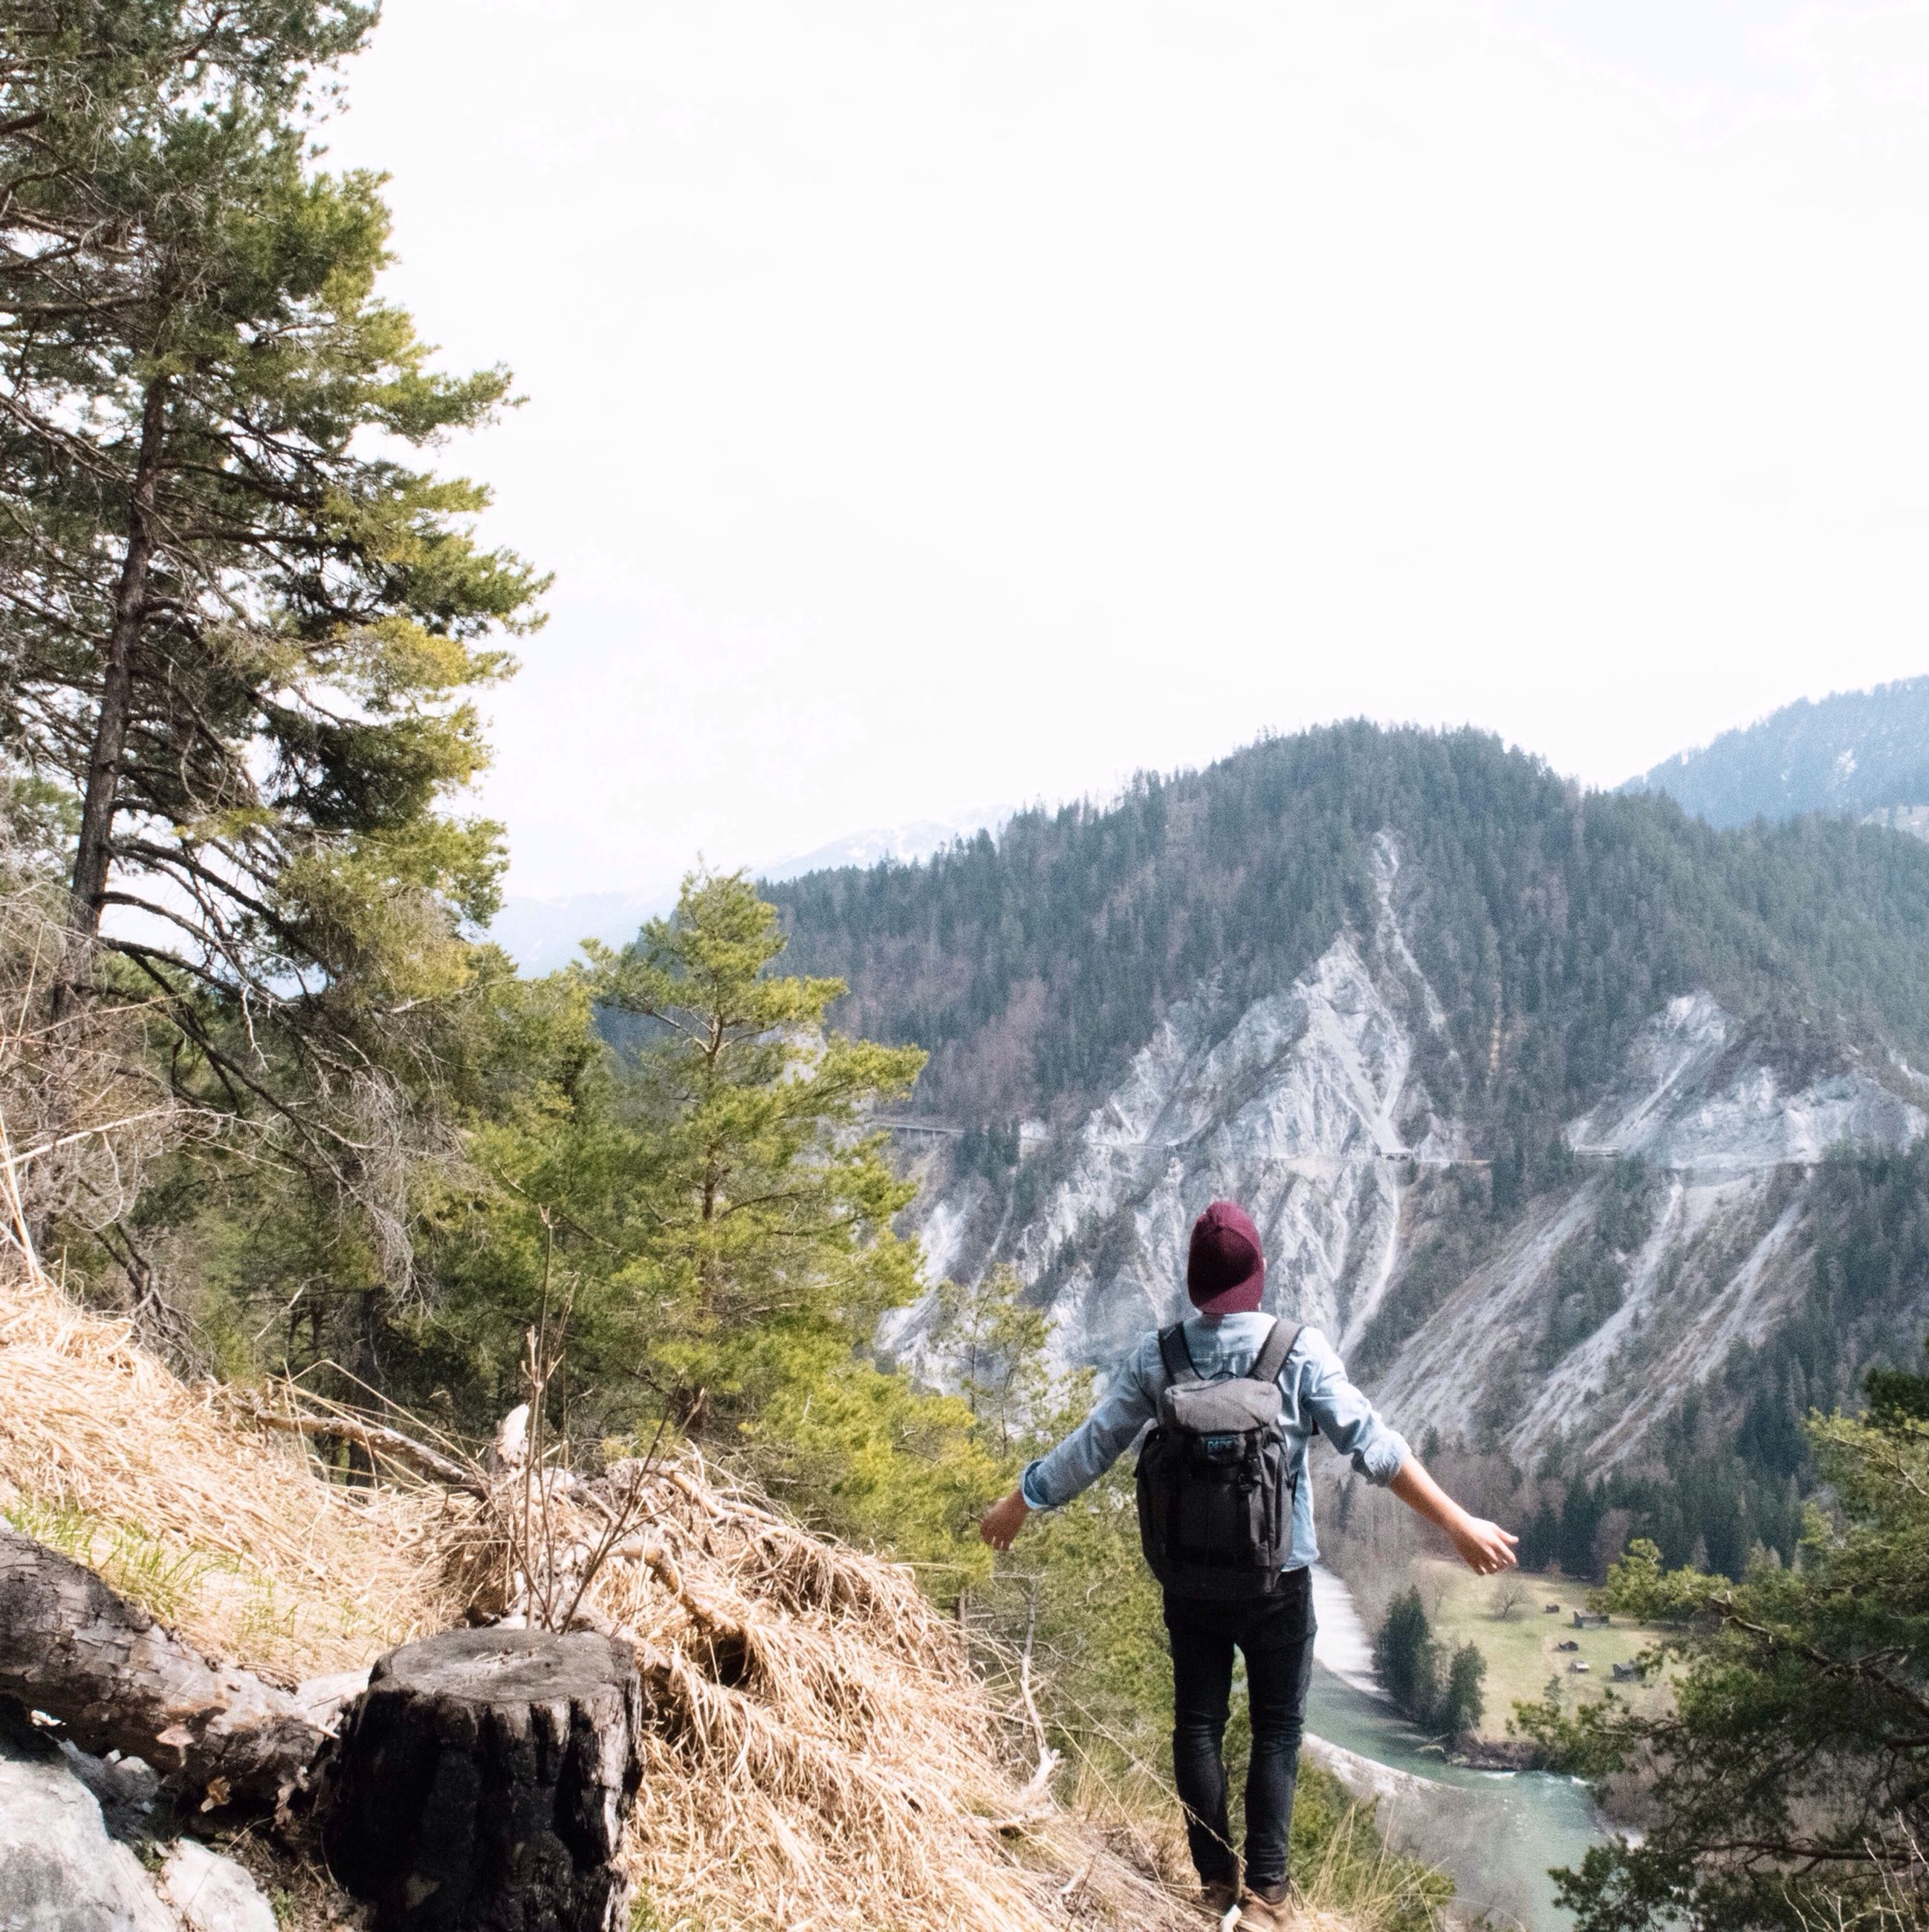 lifestyles, mountain, leisure activity, full length, rear view, men, hiking, clear sky, backpack, rock - object, casual clothing, standing, person, nature, landscape, scenics, tourist, tranquility